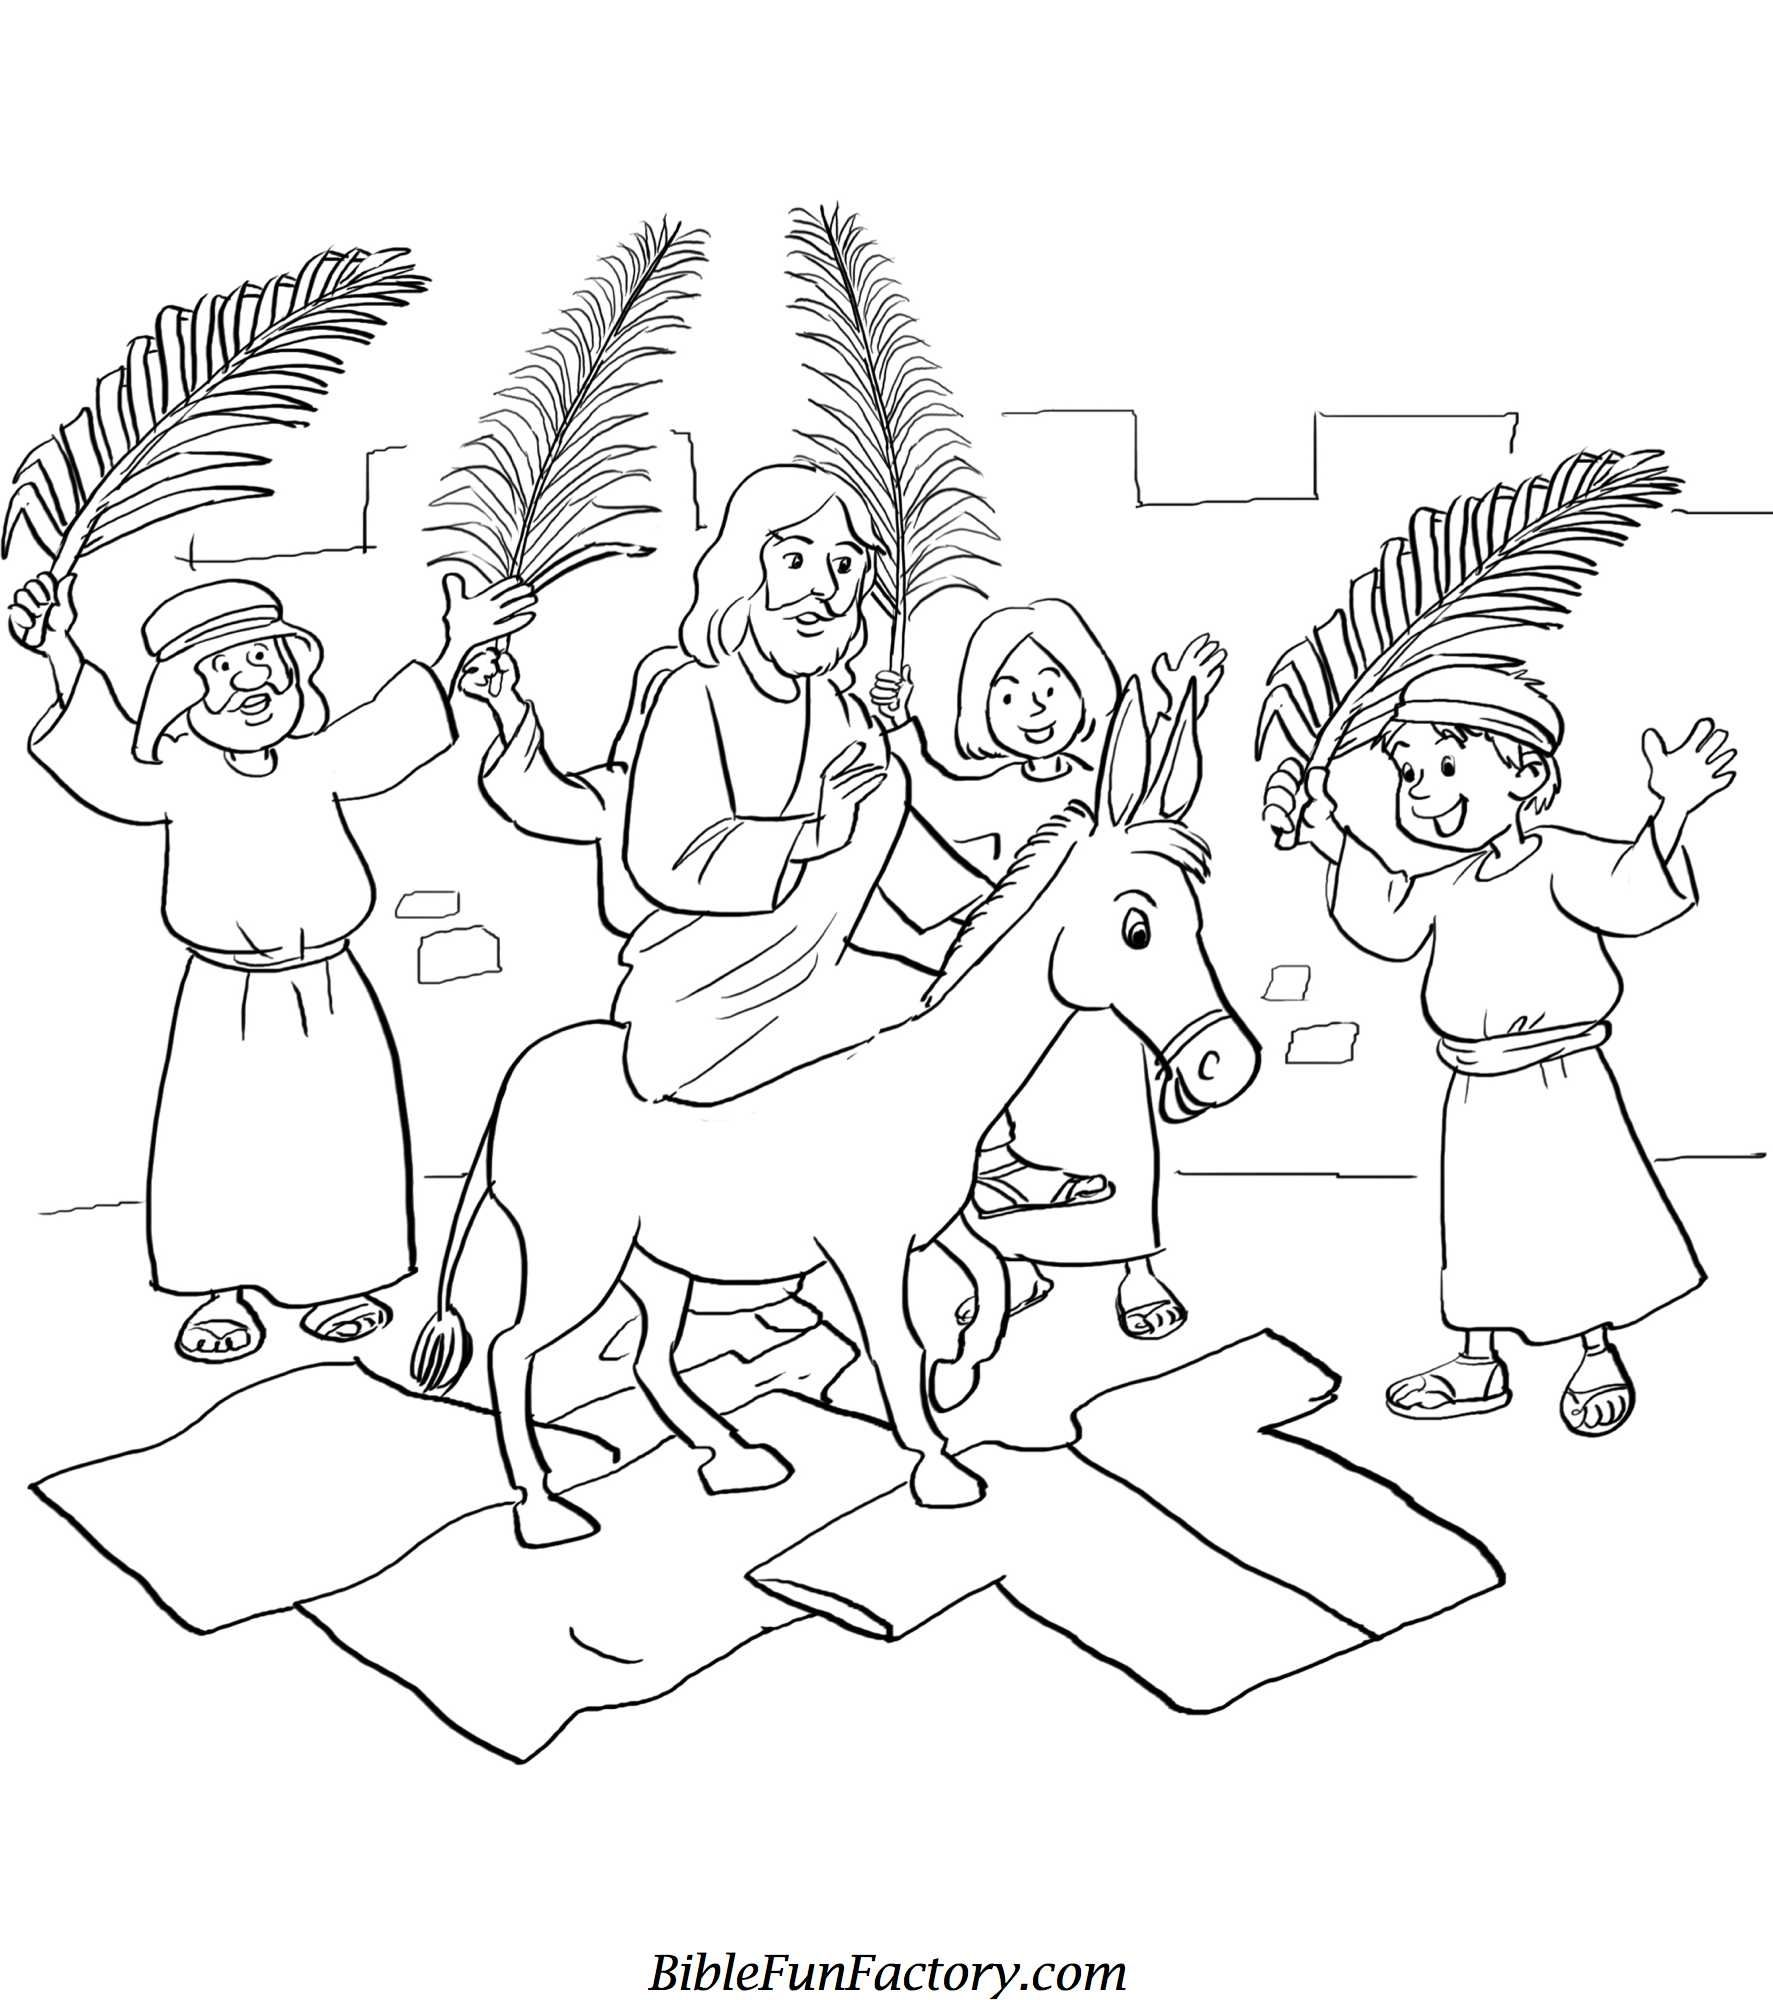 Free Palm Sunday Coloring Sheets | Bible Lessons, Games and ...